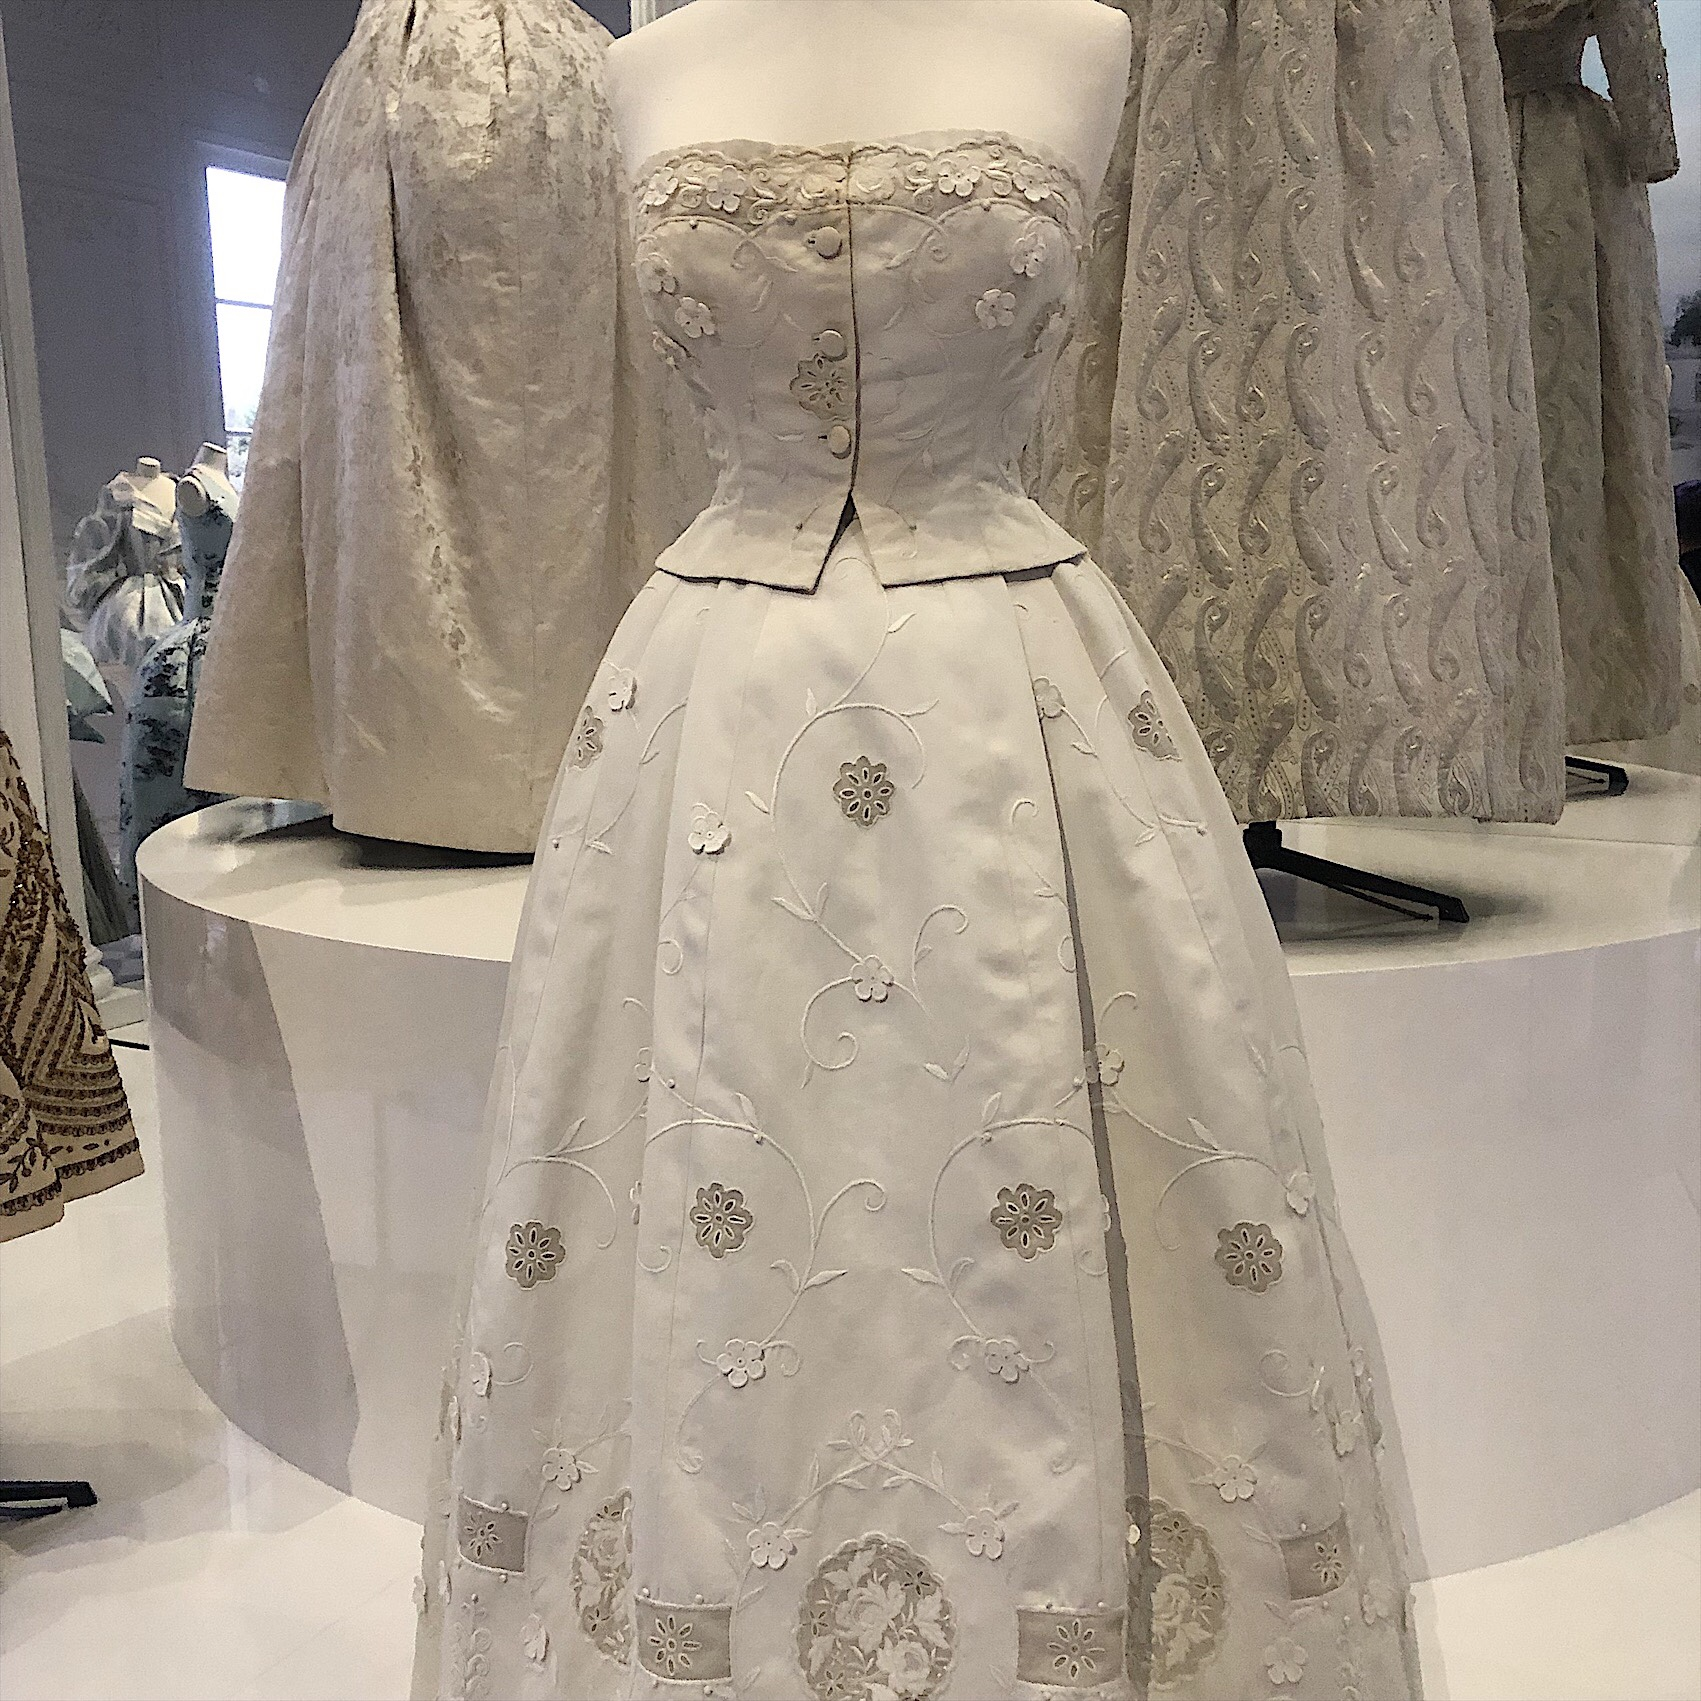 d2ccdced154c The pure white silk brocade sleeveless gown, was a standout favourite and  one that I would wear everywhere, if given the chance. This was pure Dior  fantasy ...